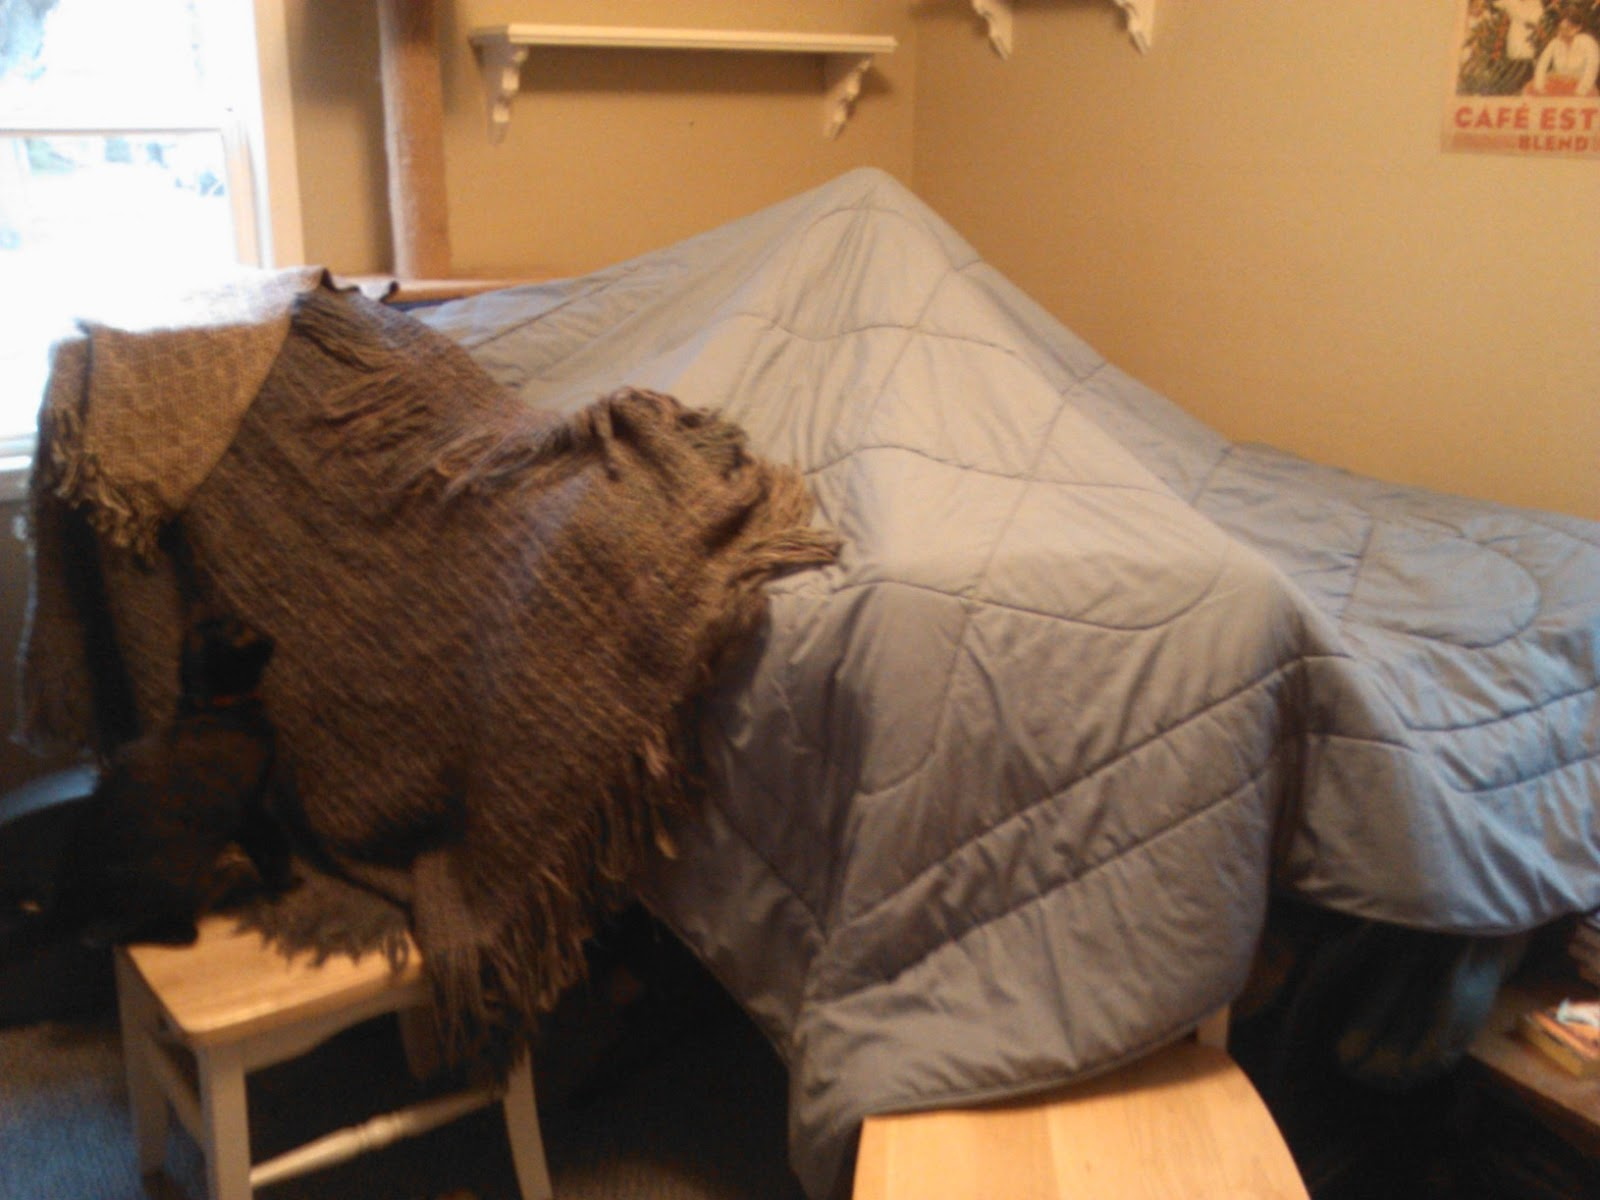 Miriam Forster On anxiety and blanket forts